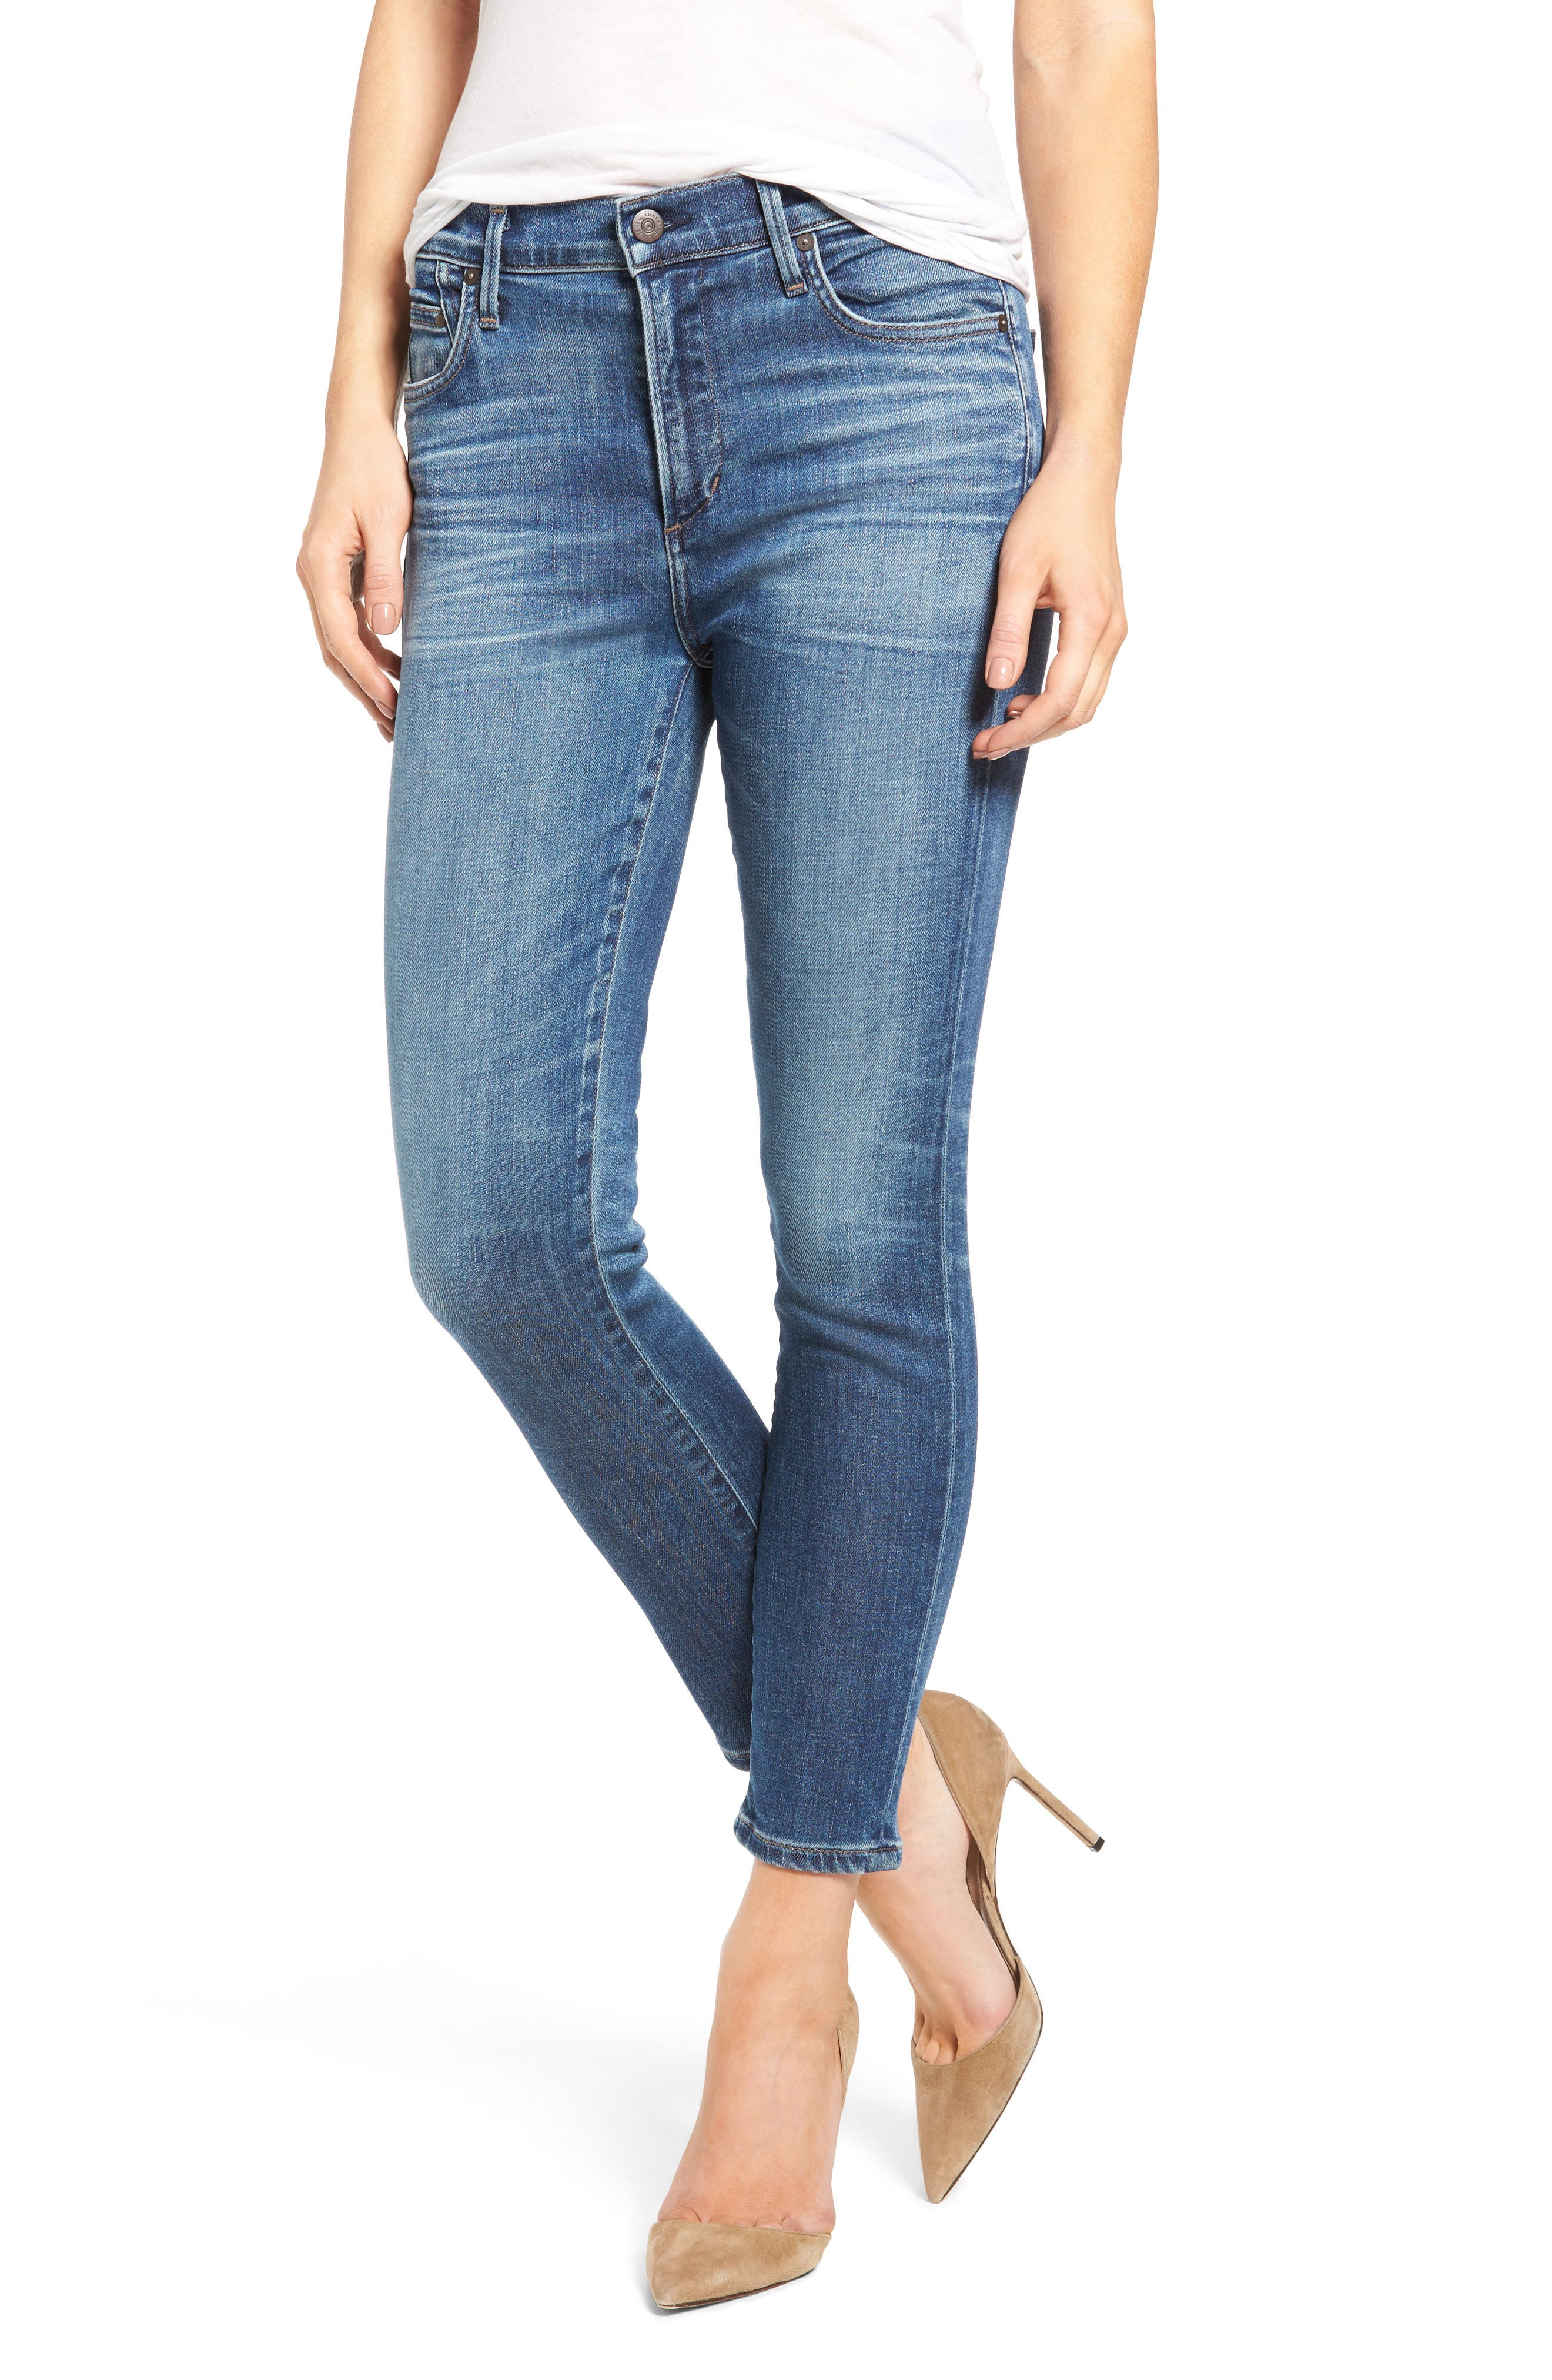 Alternate Image 1 Selected - Citizens of Humanity Rocket High Waist Crop Skinny Jeans (Voodoo)